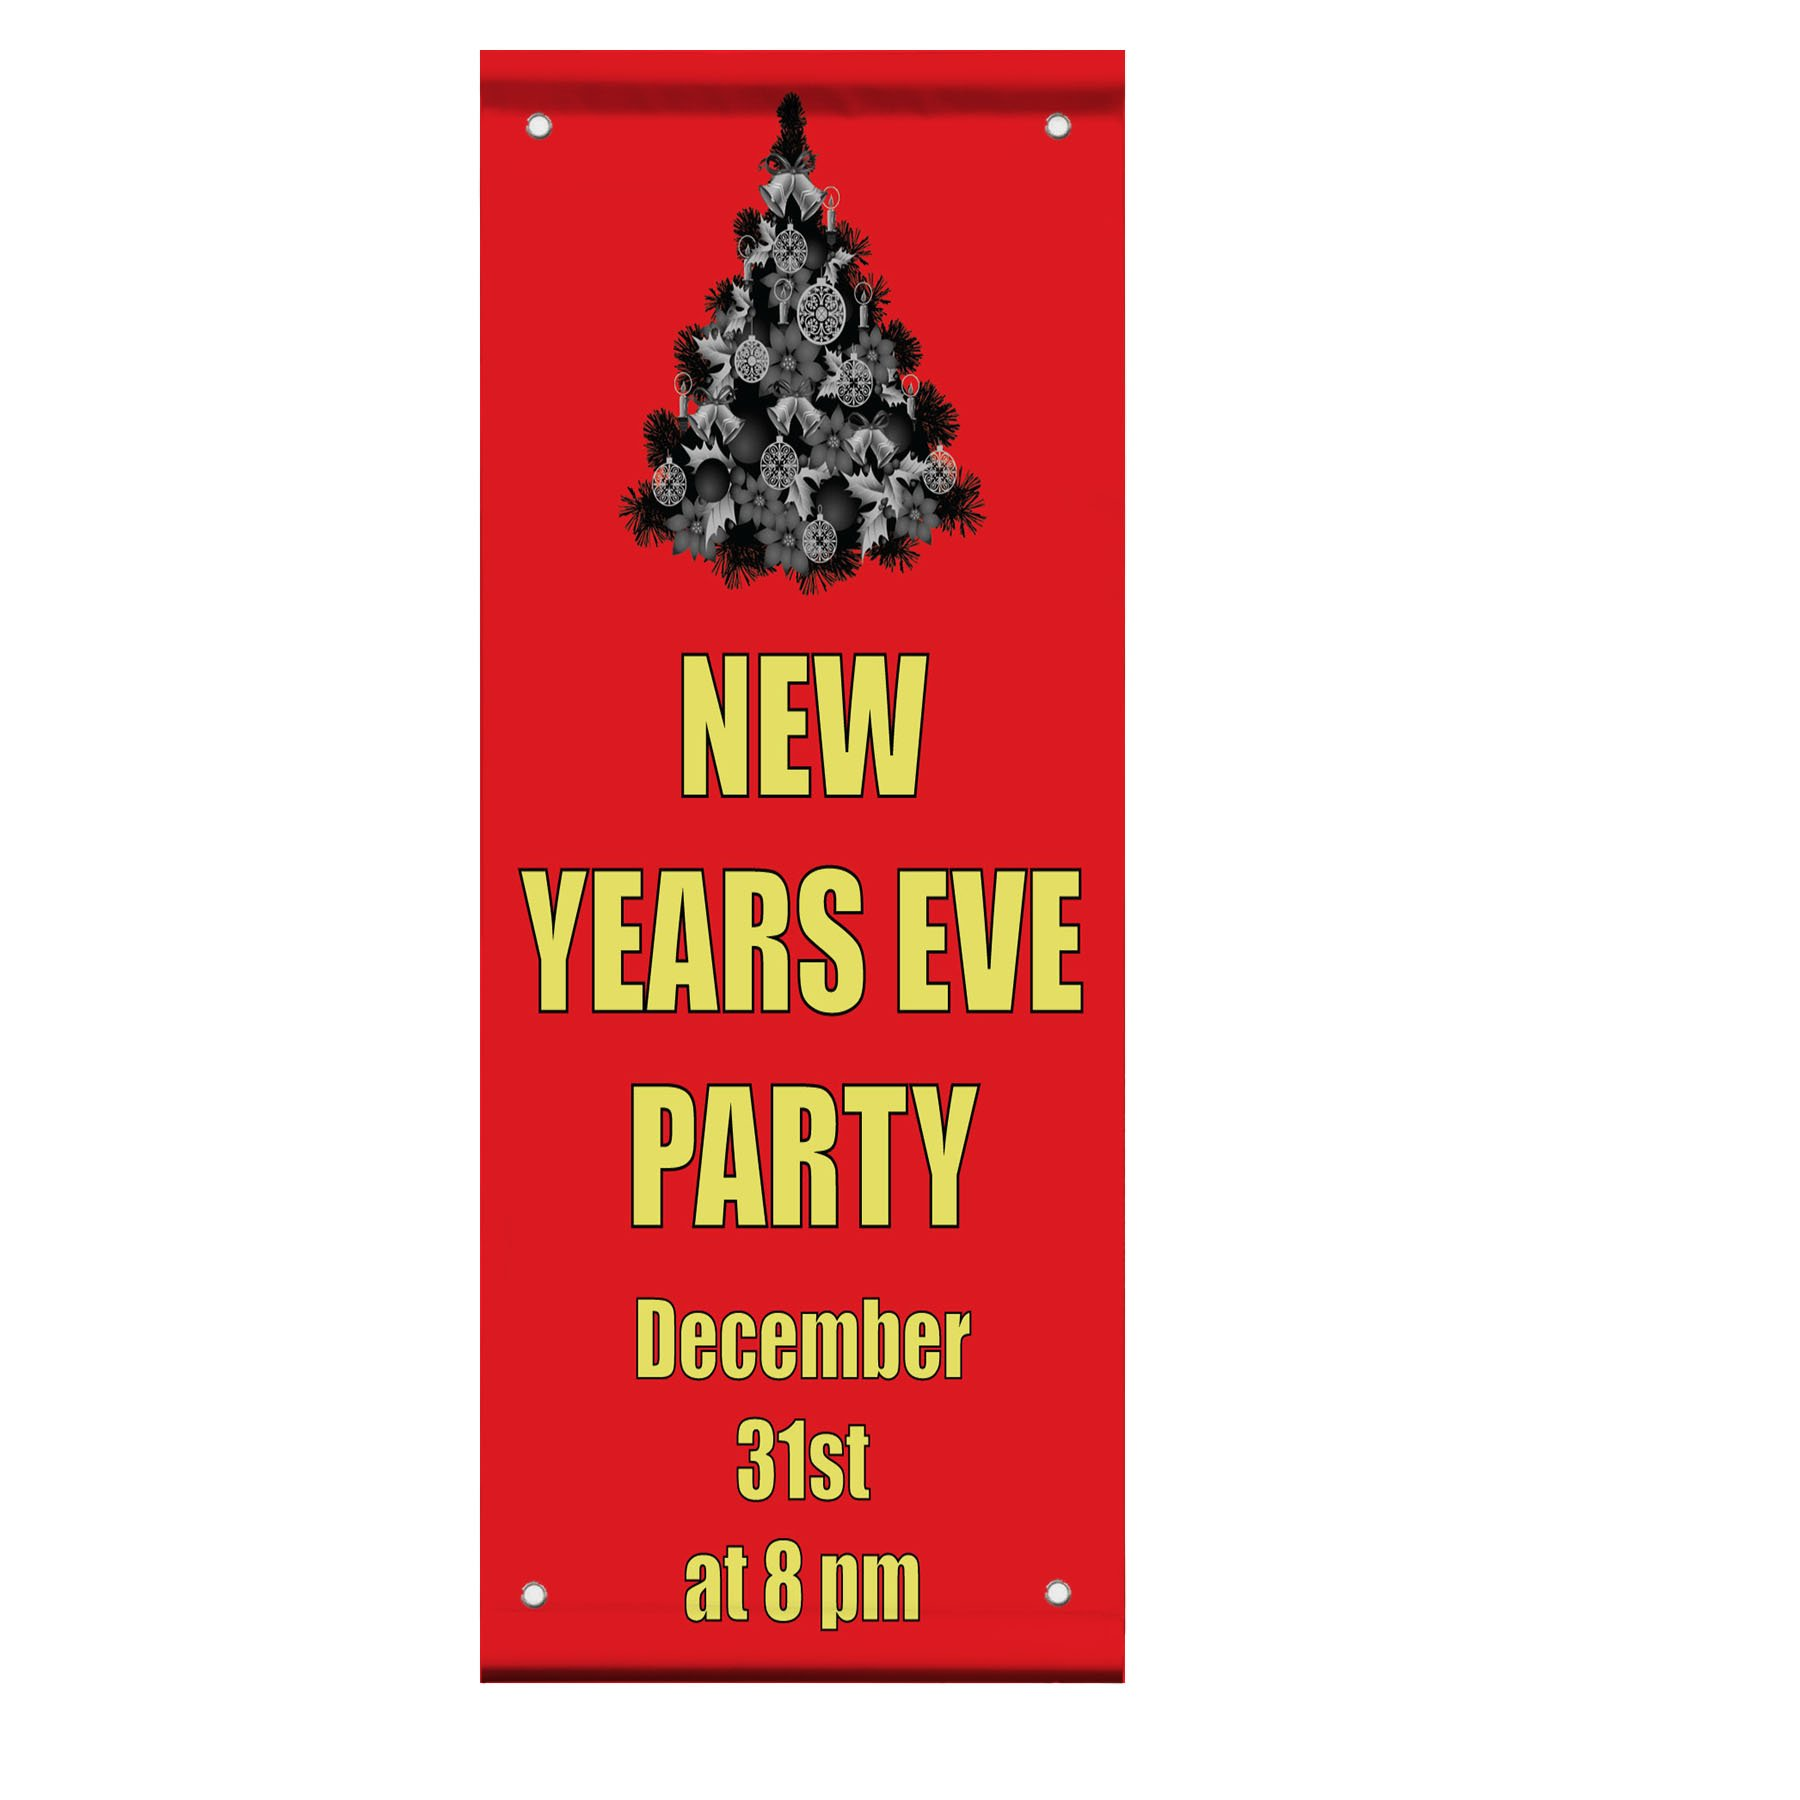 New Years Eve Party Custom Time Double Sided Vertical Pole Banner Sign 18 in x 26 in w/ Wall Bracket